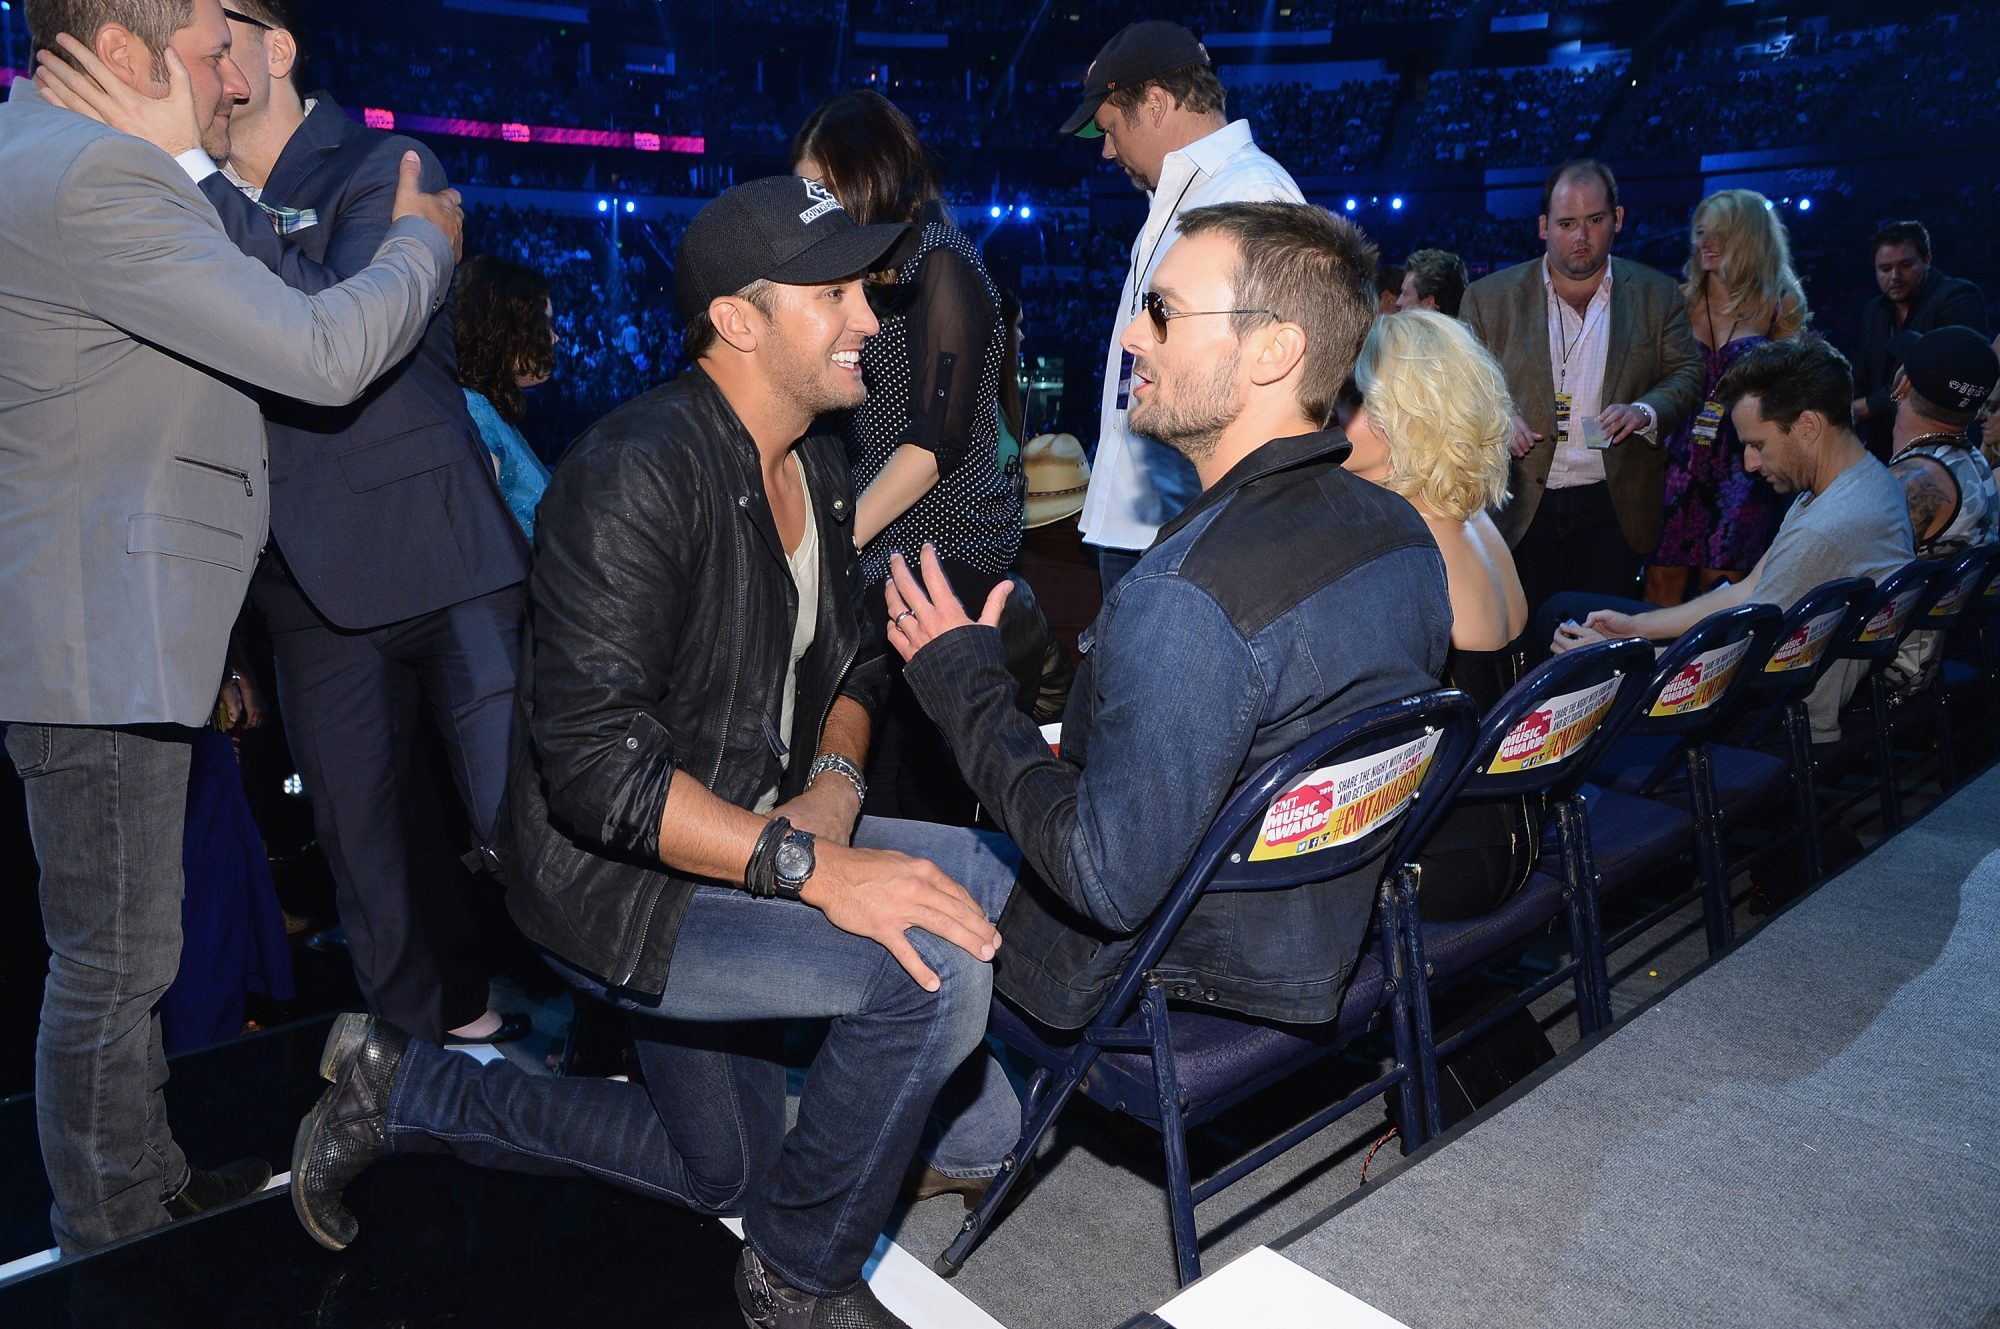 Eric Church and Luke Bryan 2014 CMT Music Awards - Backstage & Audience